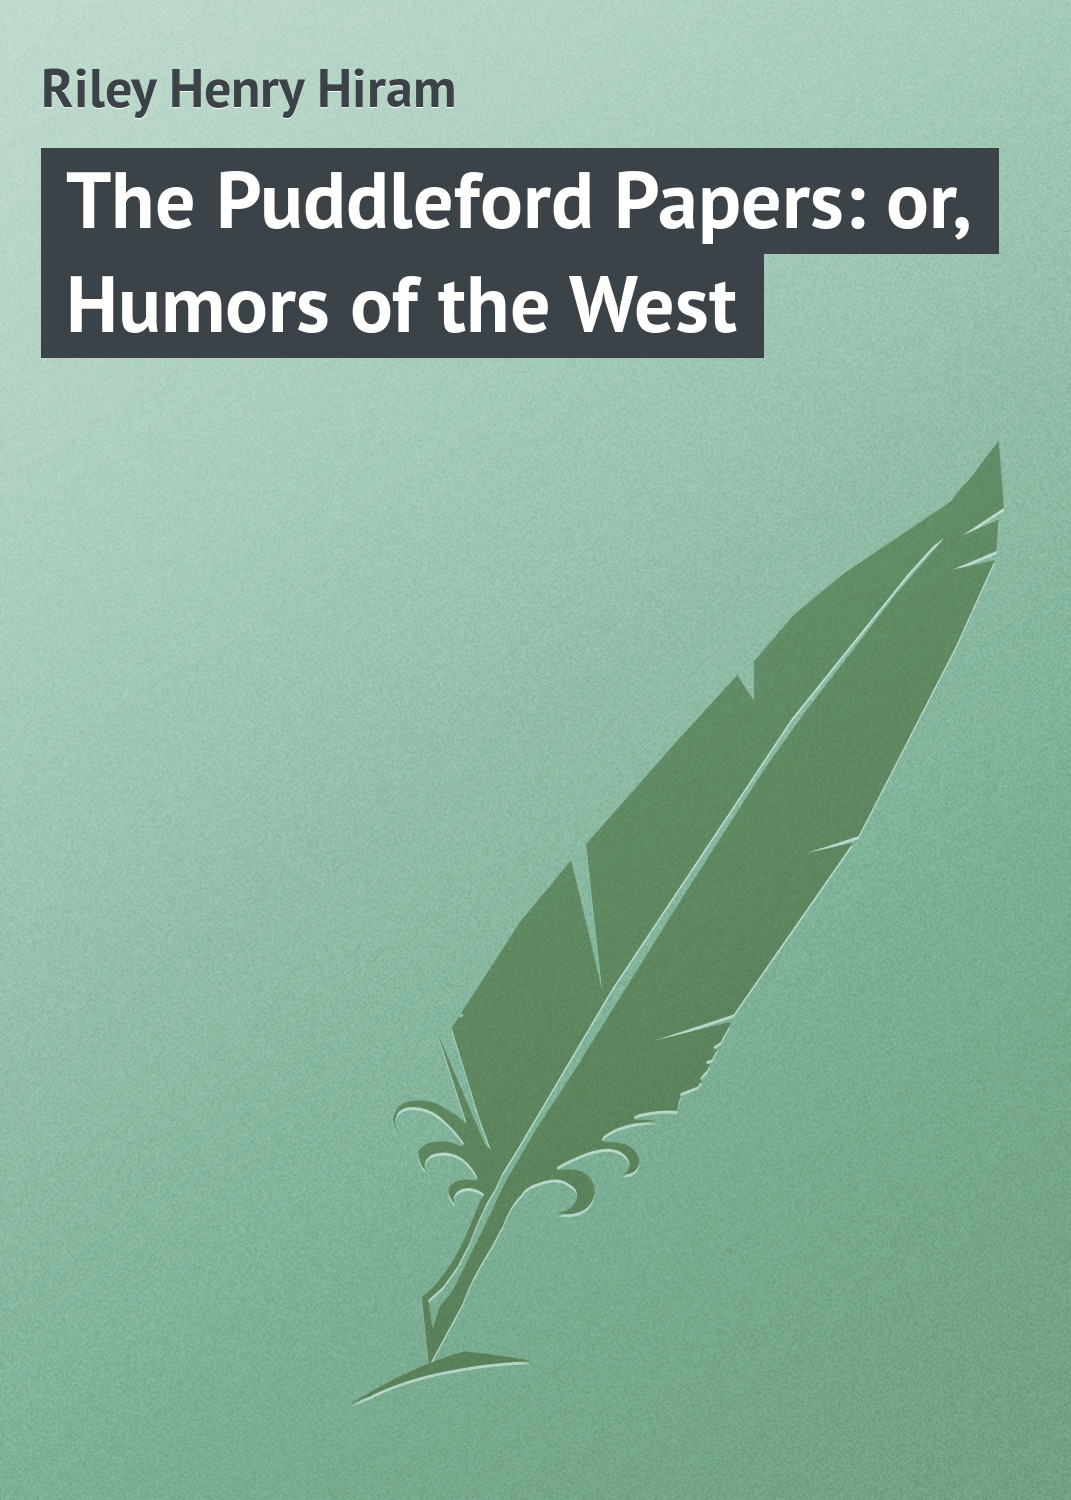 Riley Henry Hiram The Puddleford Papers: or, Humors of the West